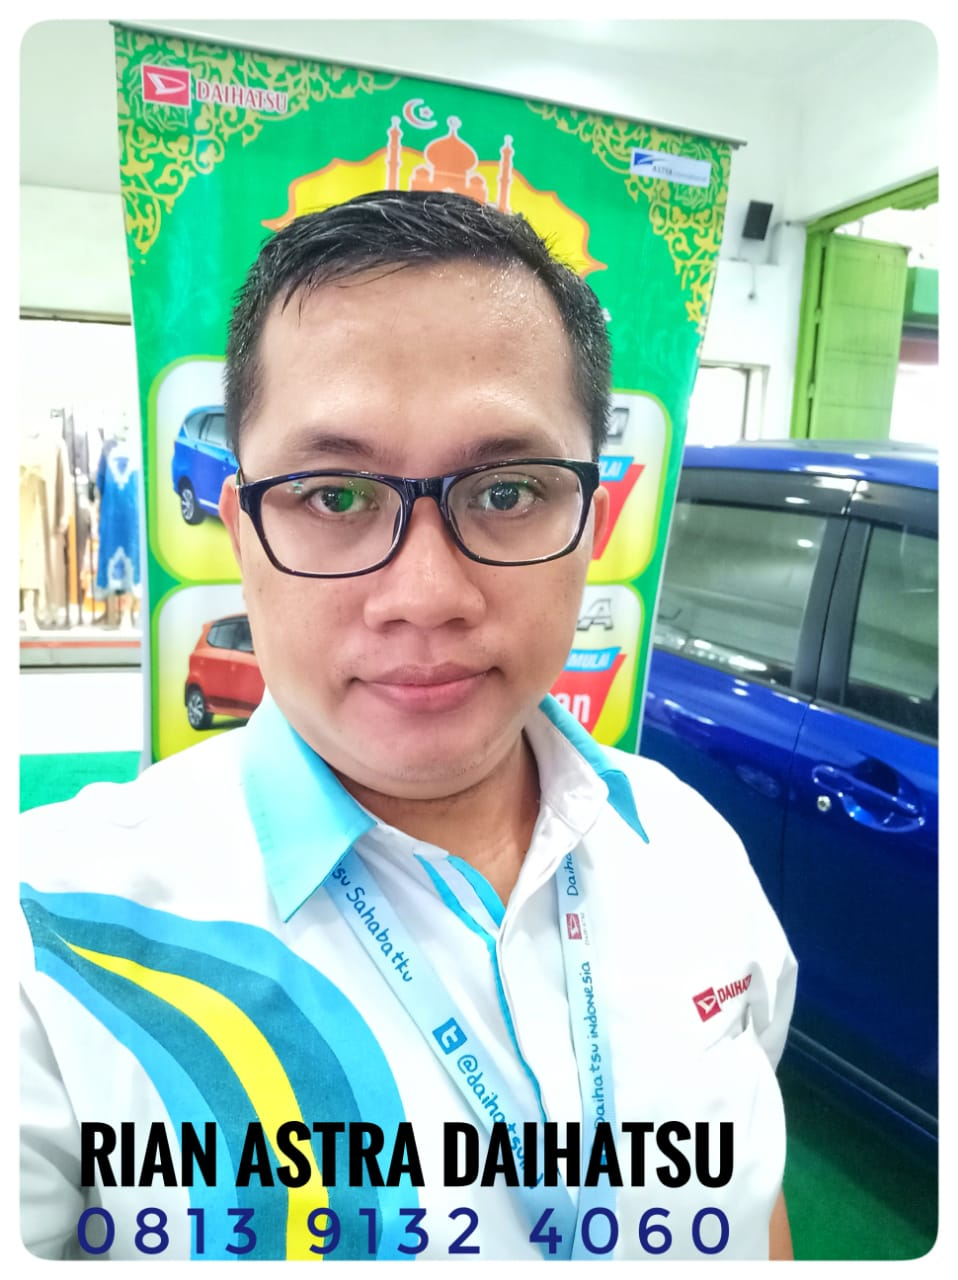 Sales Marketing Mobil Dealer Daihatsu Rian